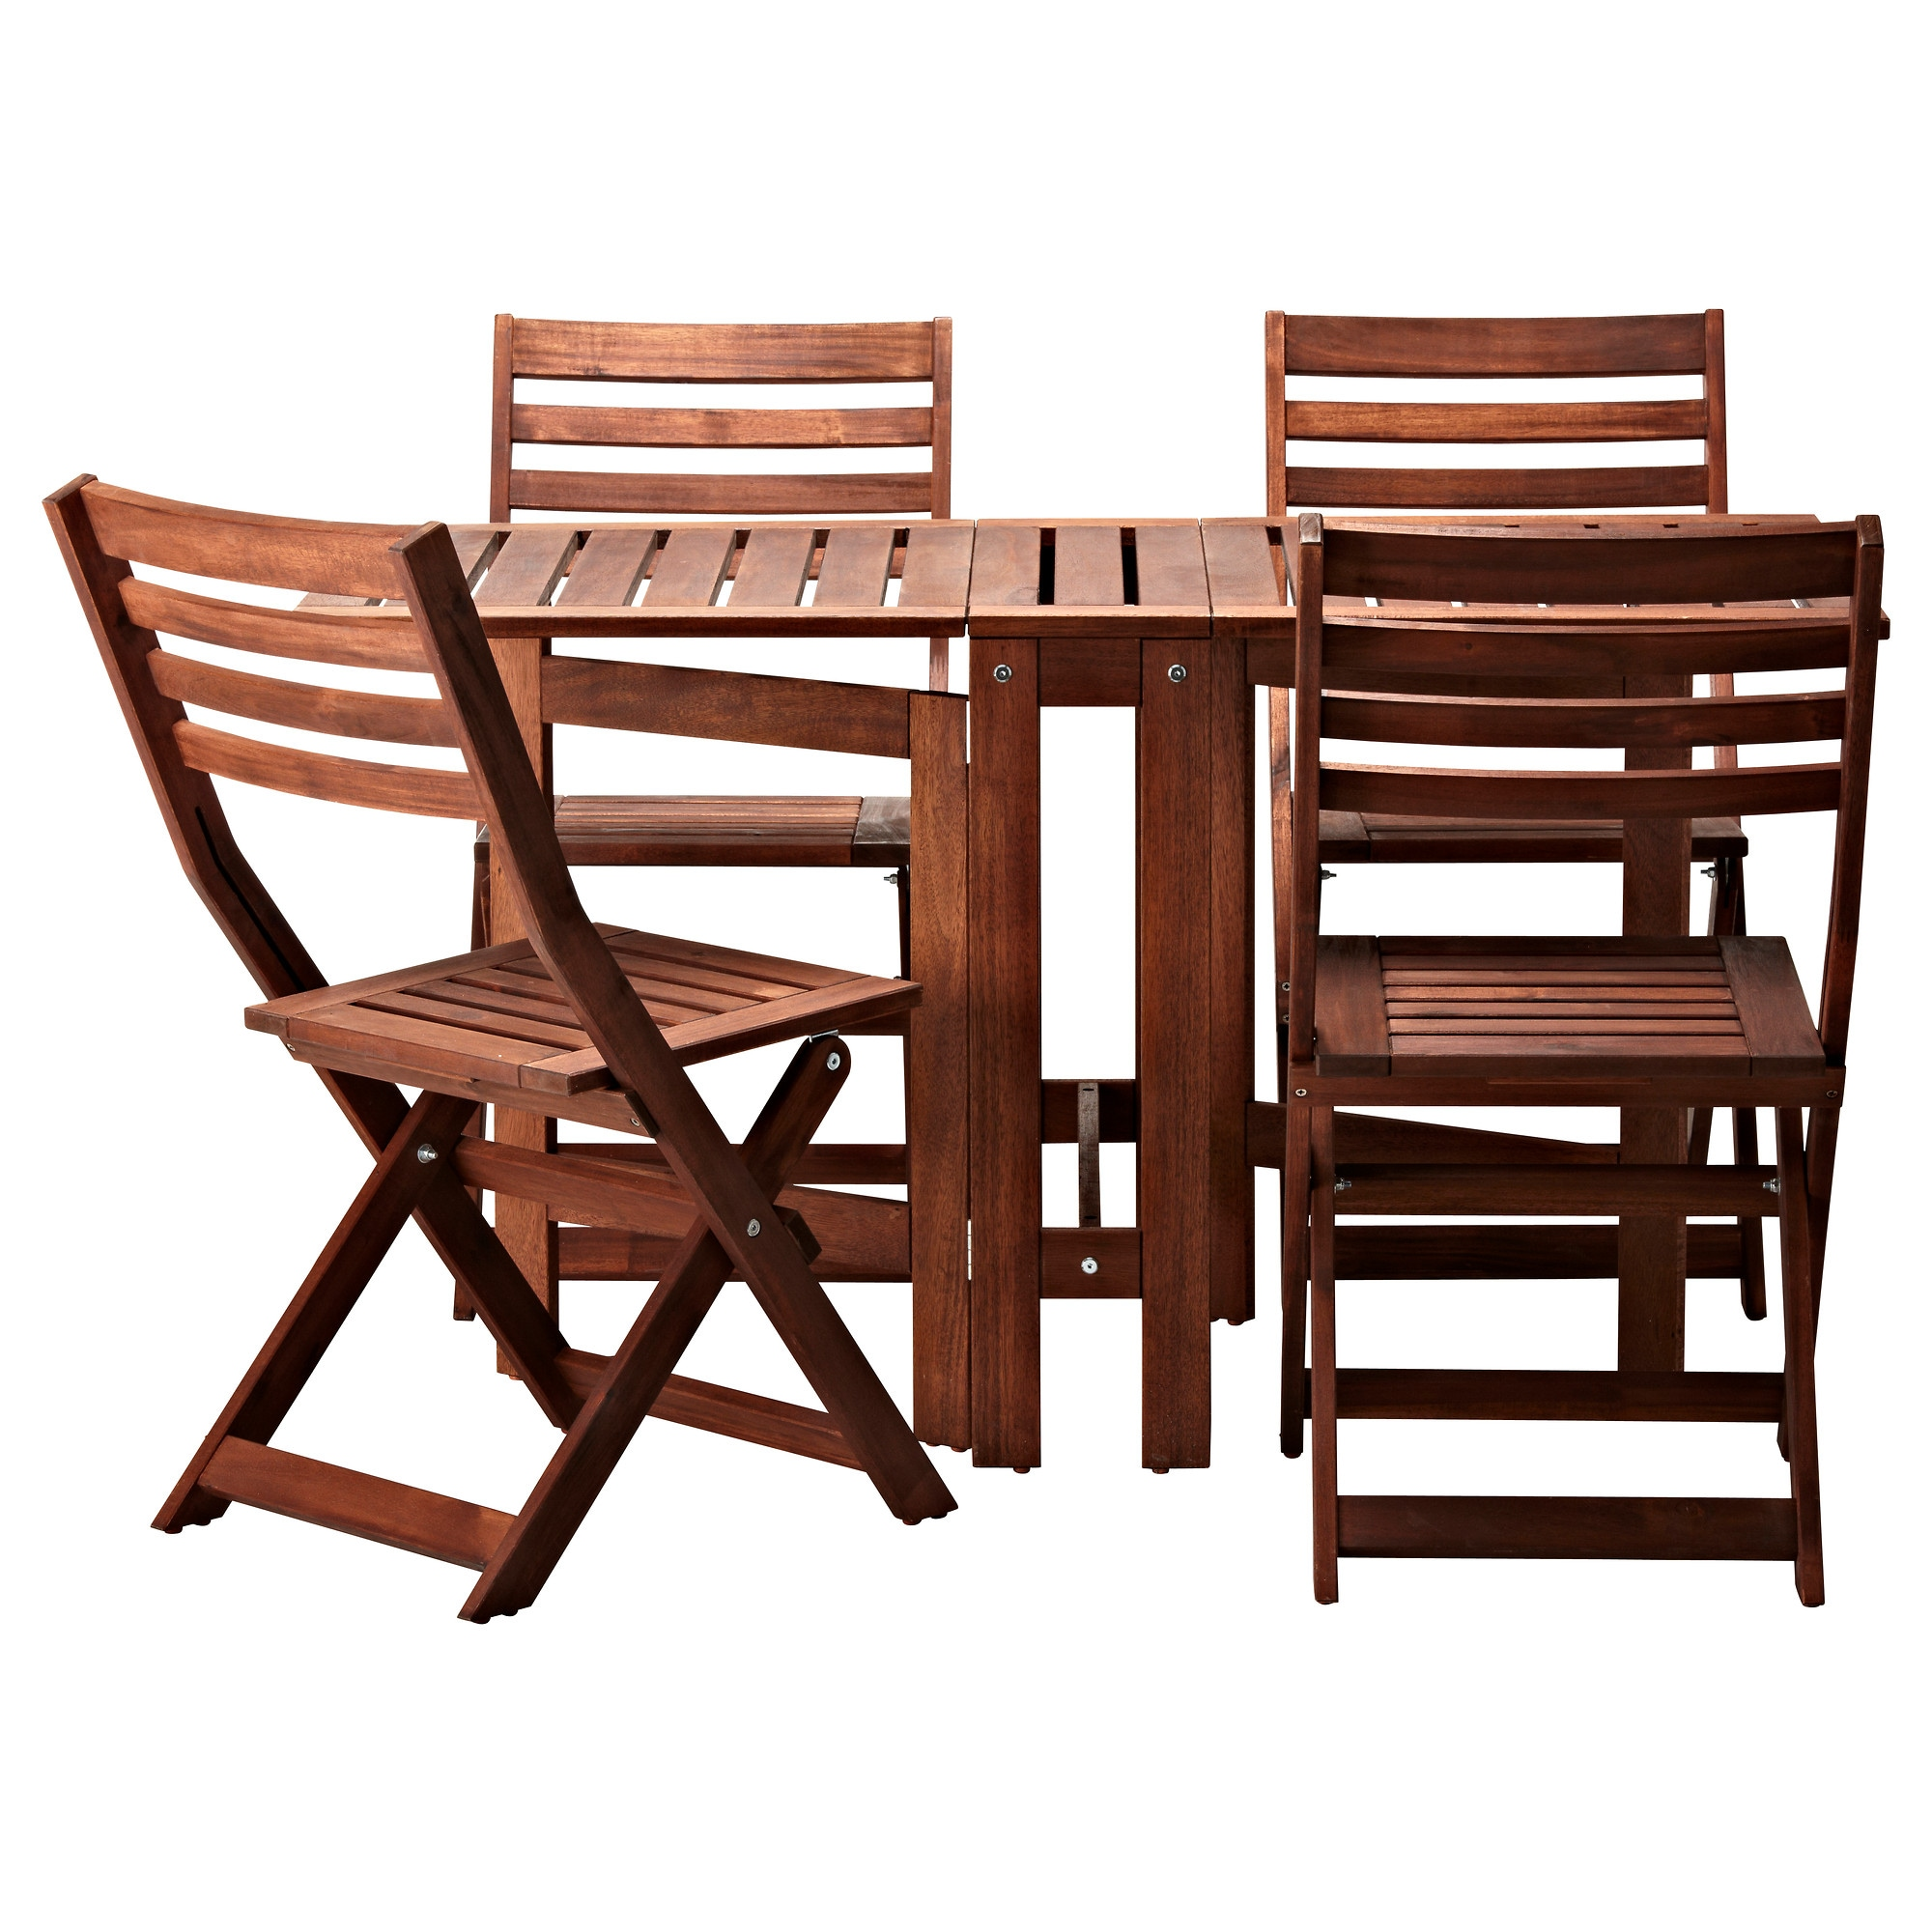 Garden Furniture Chairs outdoor dining furniture, dining chairs & dining sets - ikea